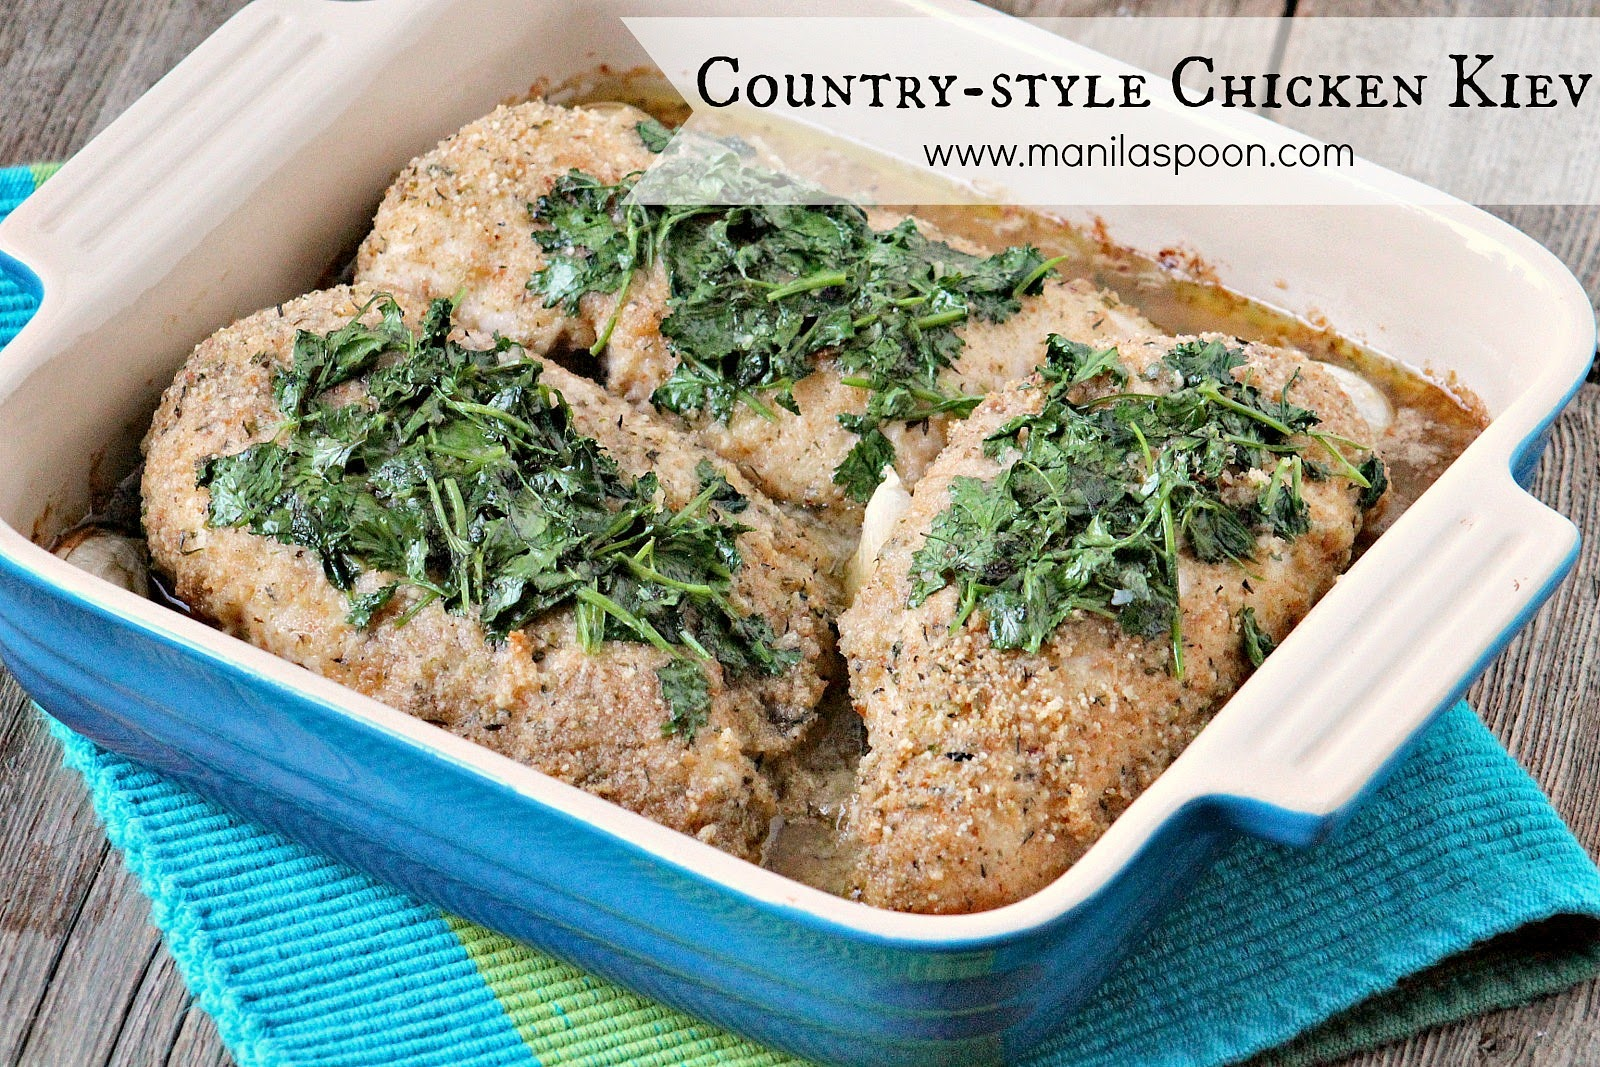 Tried and tested recipe for a delicious and super easy dish - Country-Style Chicken Kiev! The chicken comes out so tender and moist and perfectly seasoned. A must for busy weeknight dinner. #countrystyle #chickenkiev #chicken #dinner